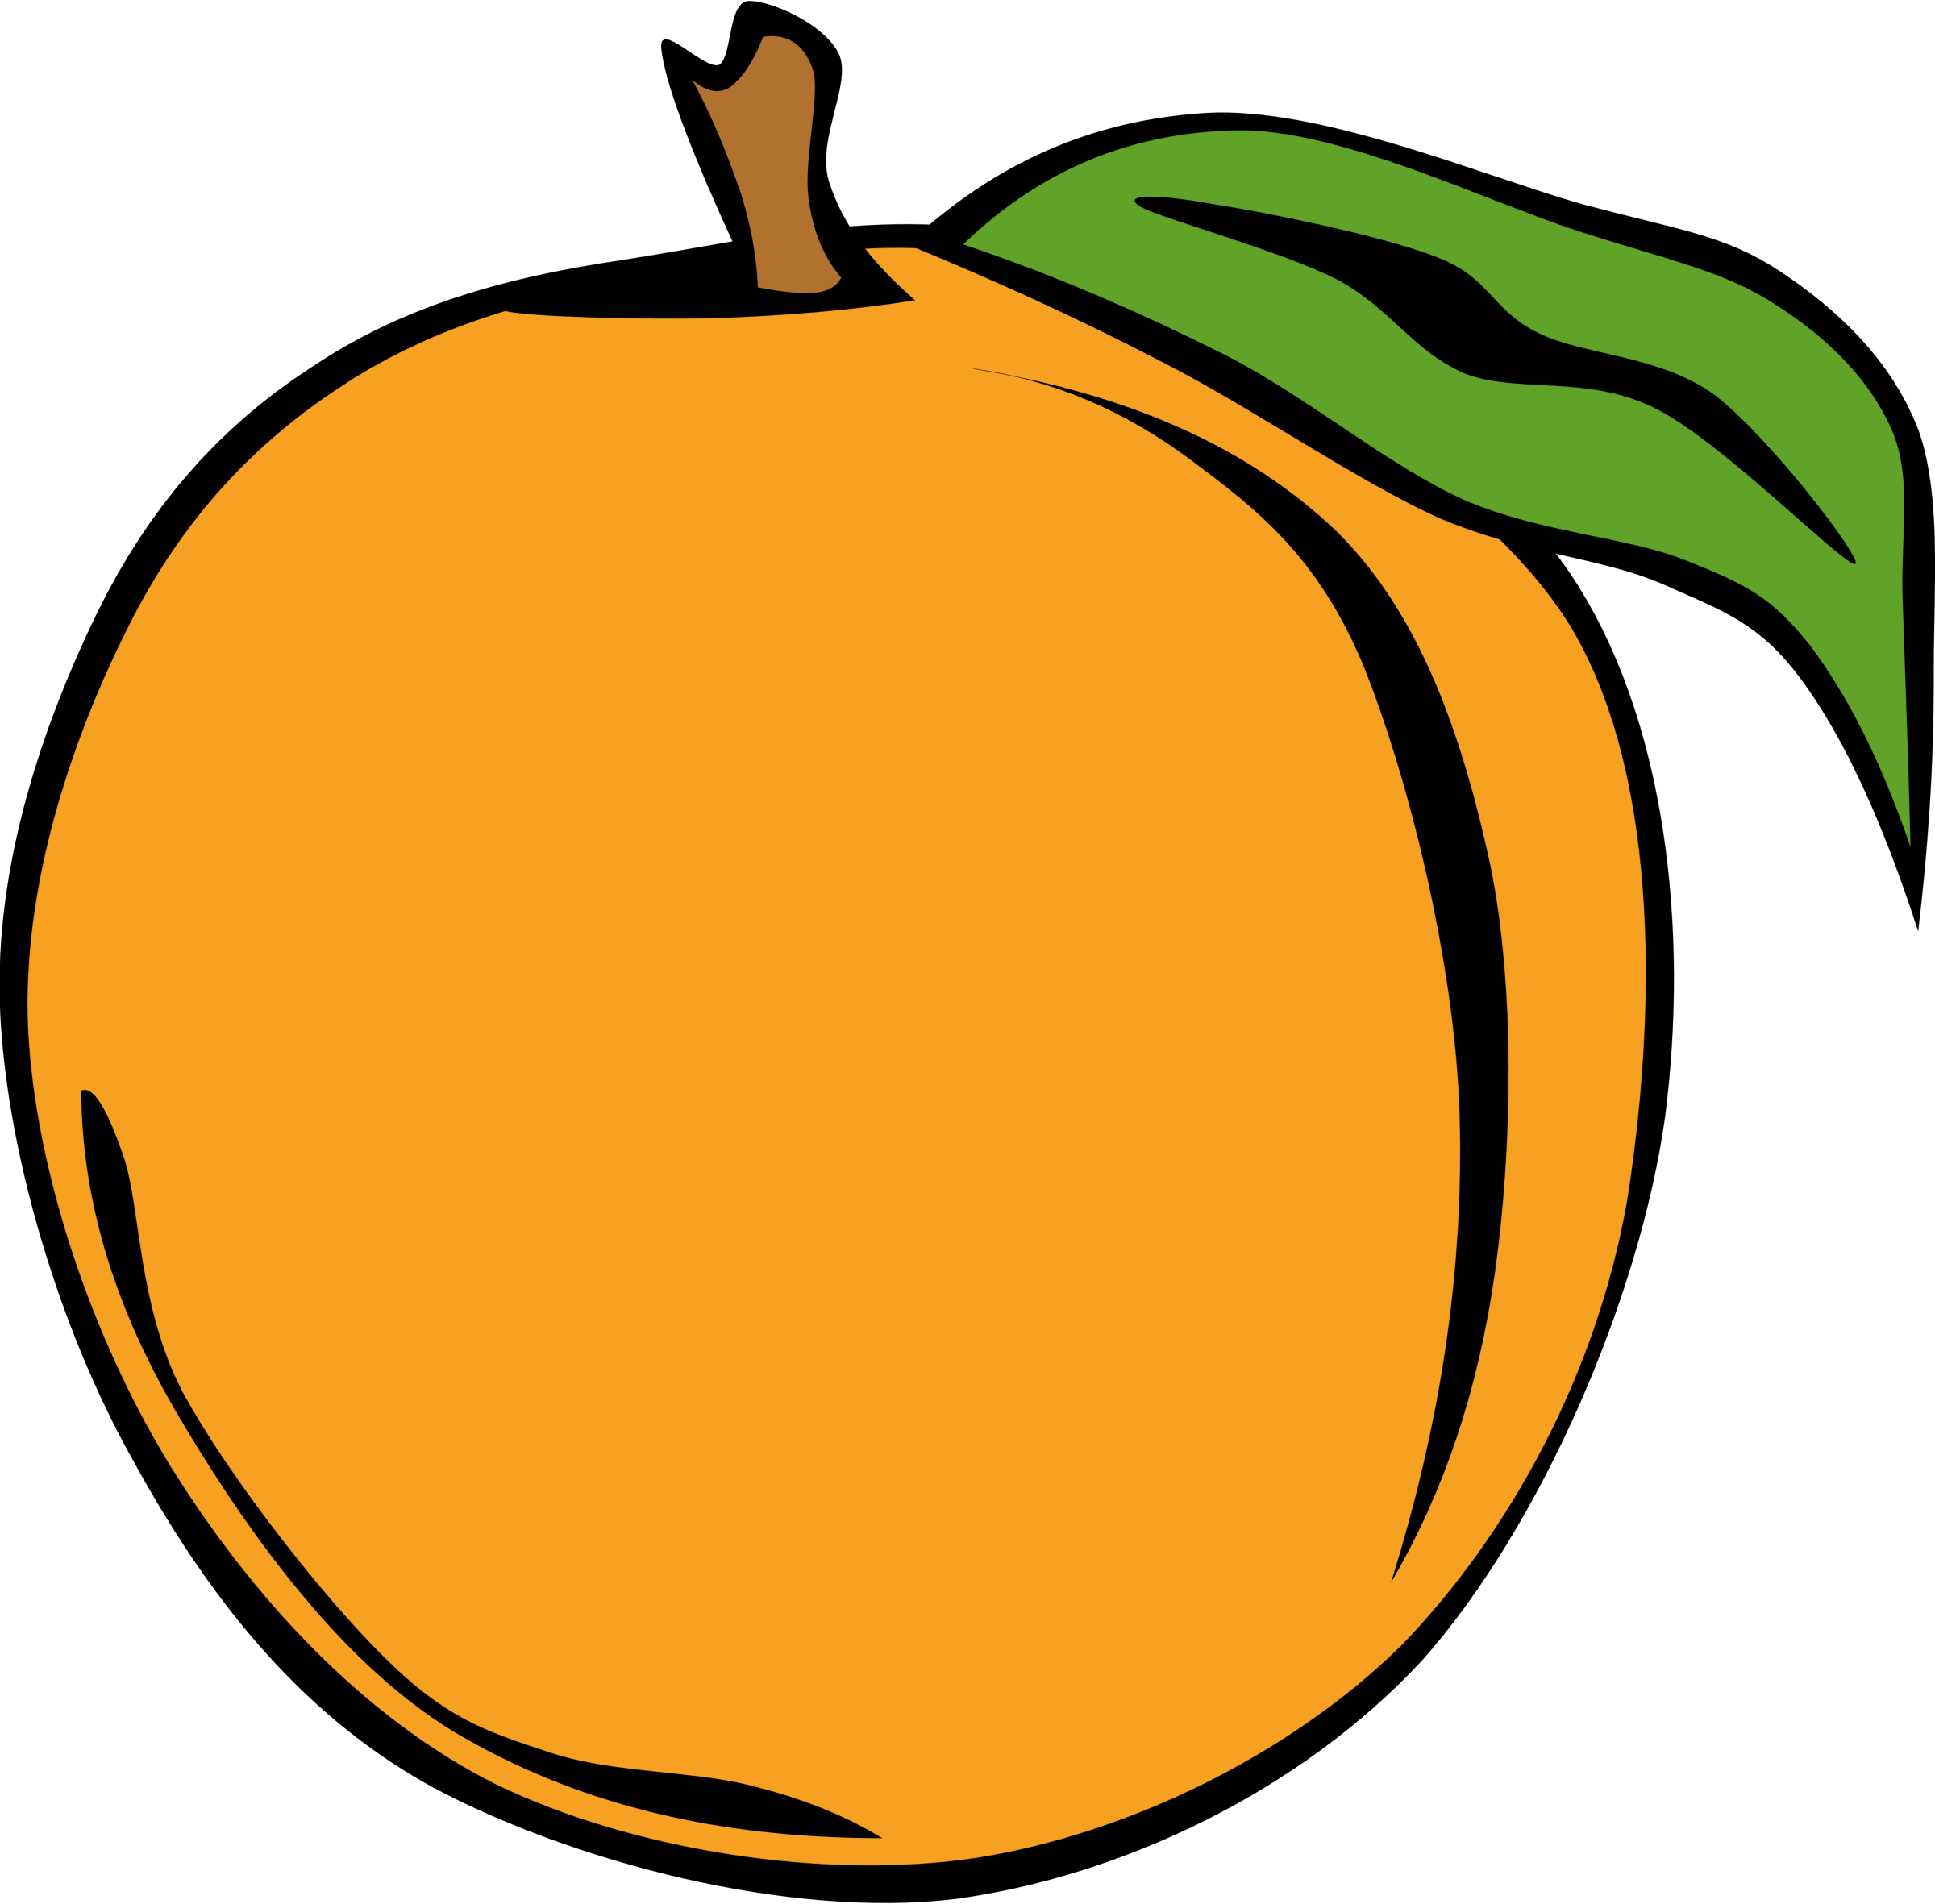 Big peach. Fruits clipart transparent free